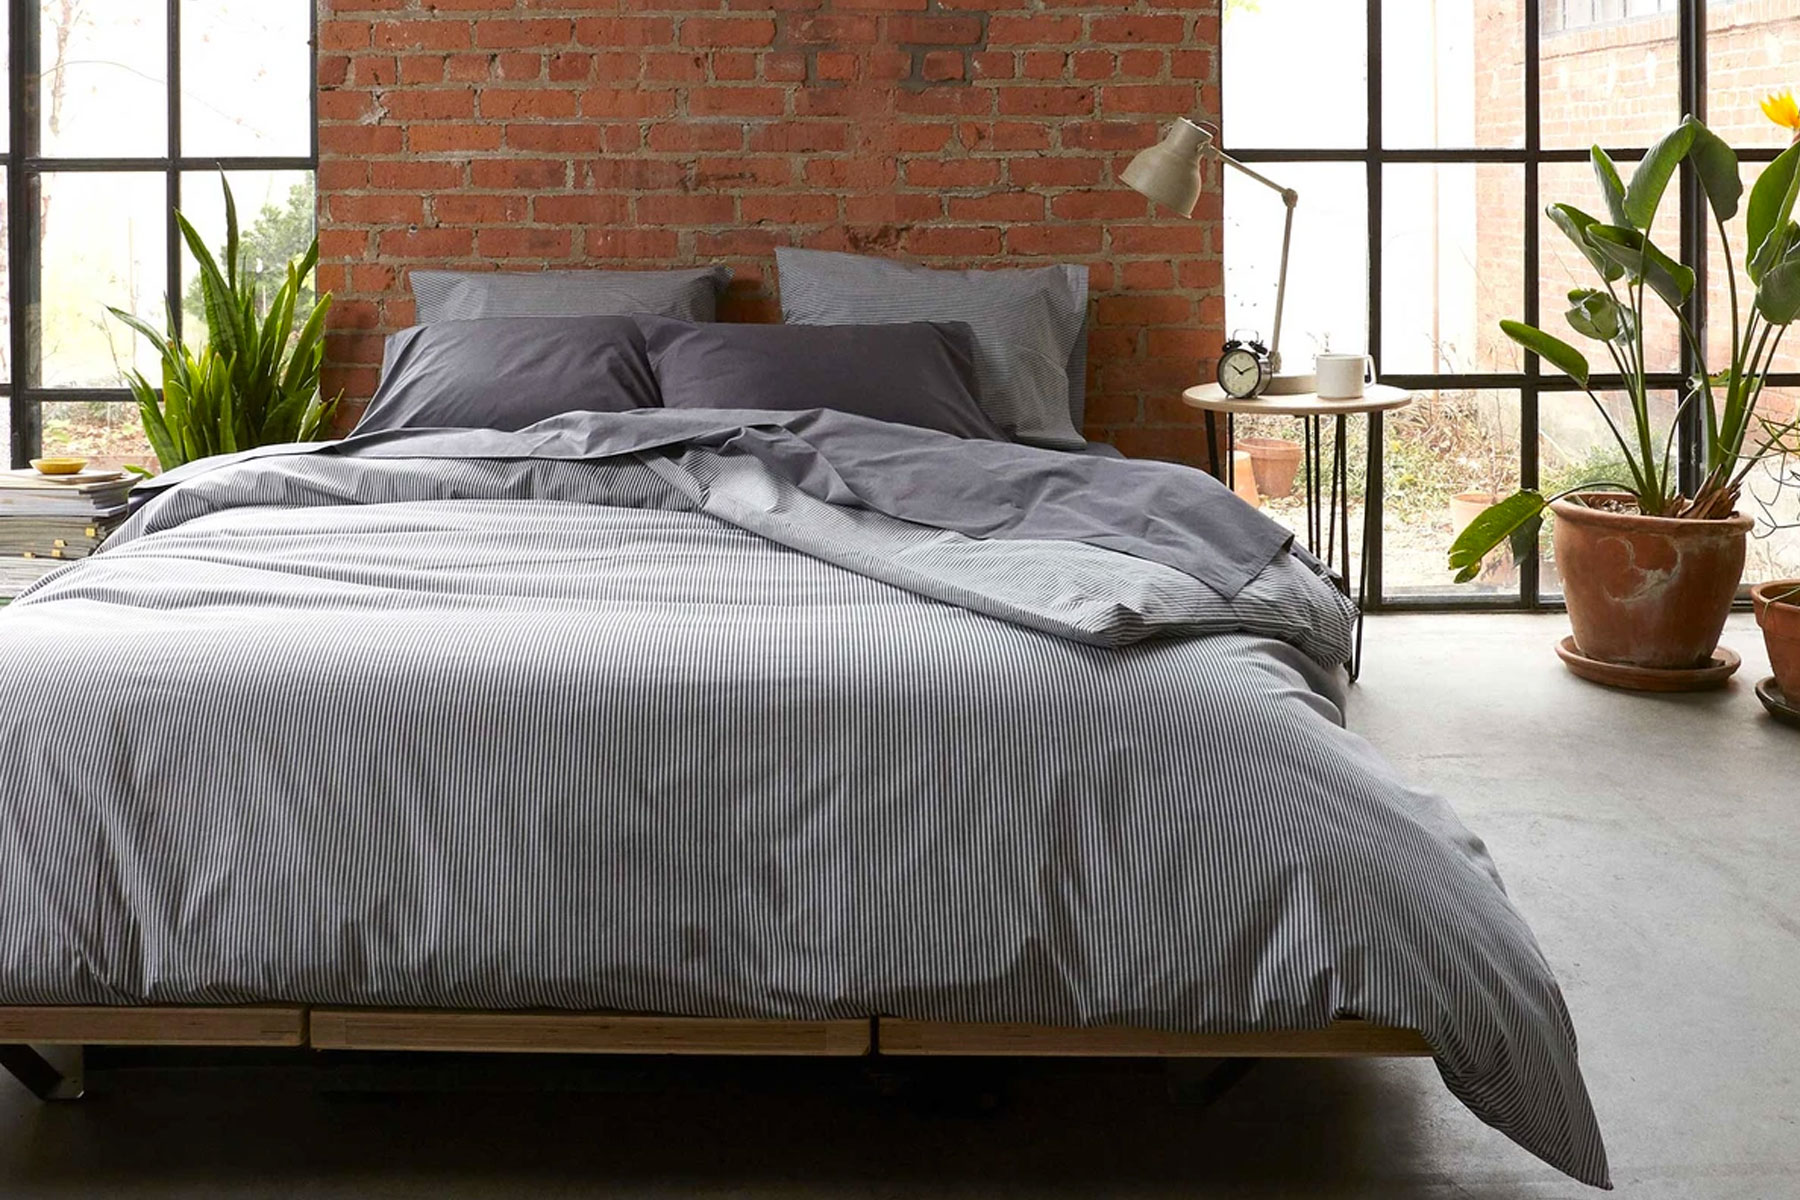 Grey bedding and comforter on bed